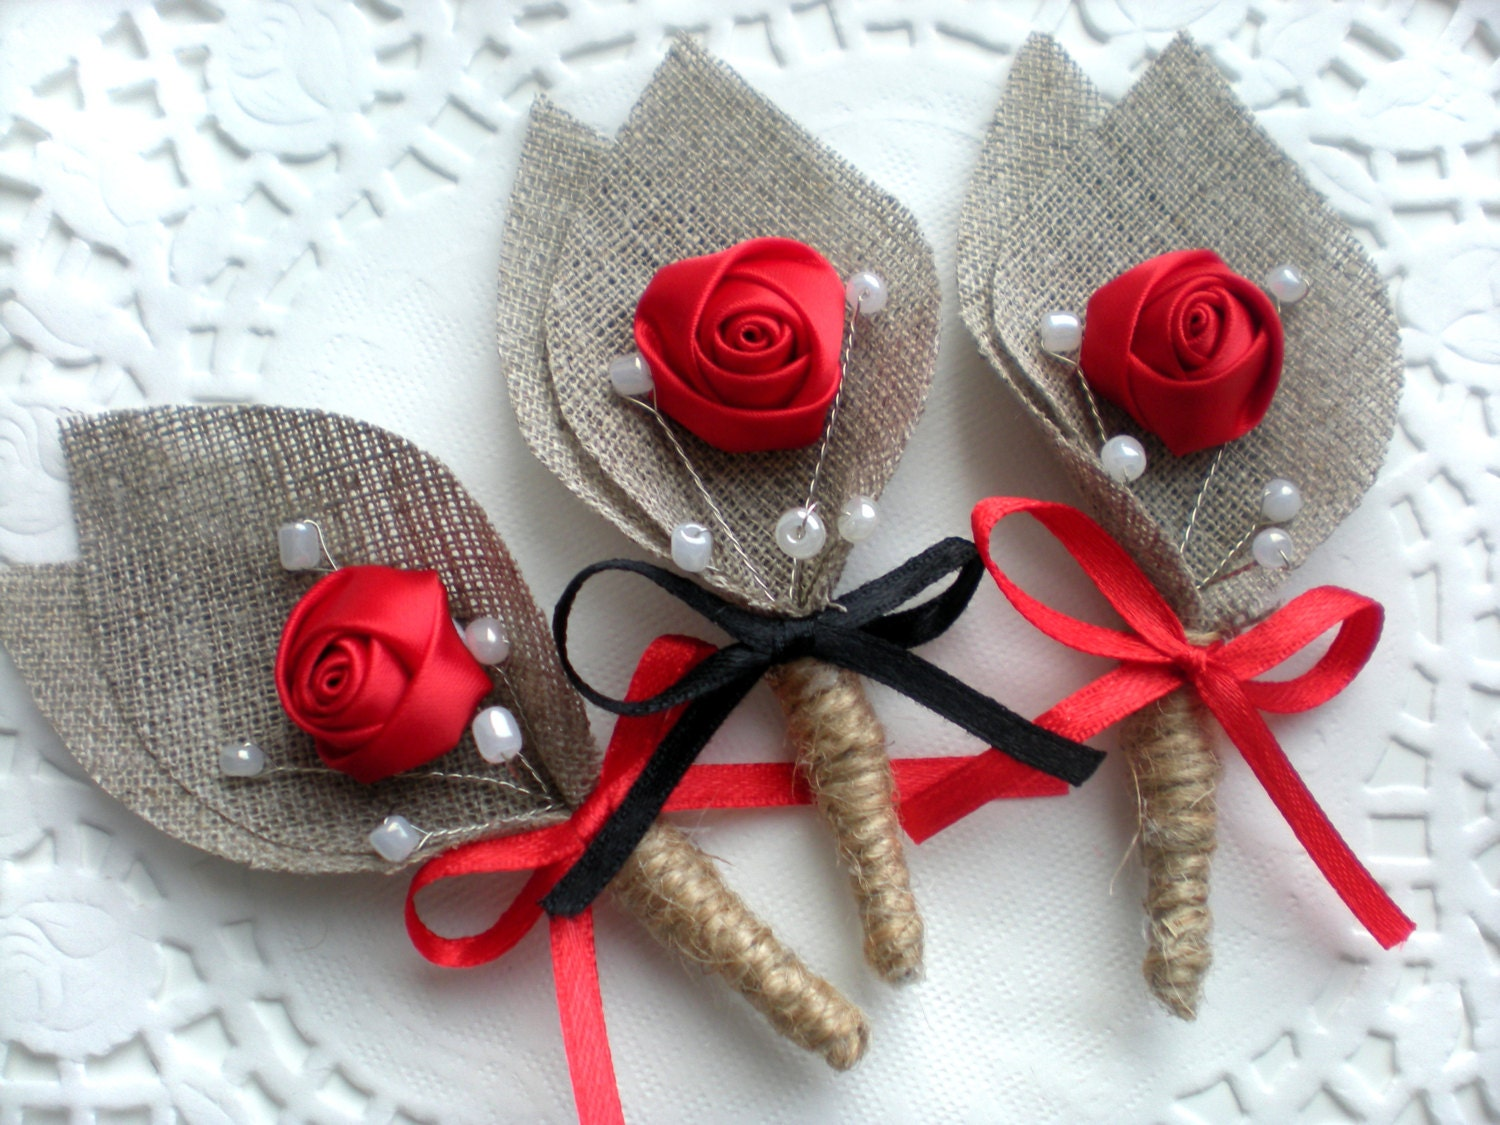 RED And BLACK Burlap Groom's Boutonniere For Wedding